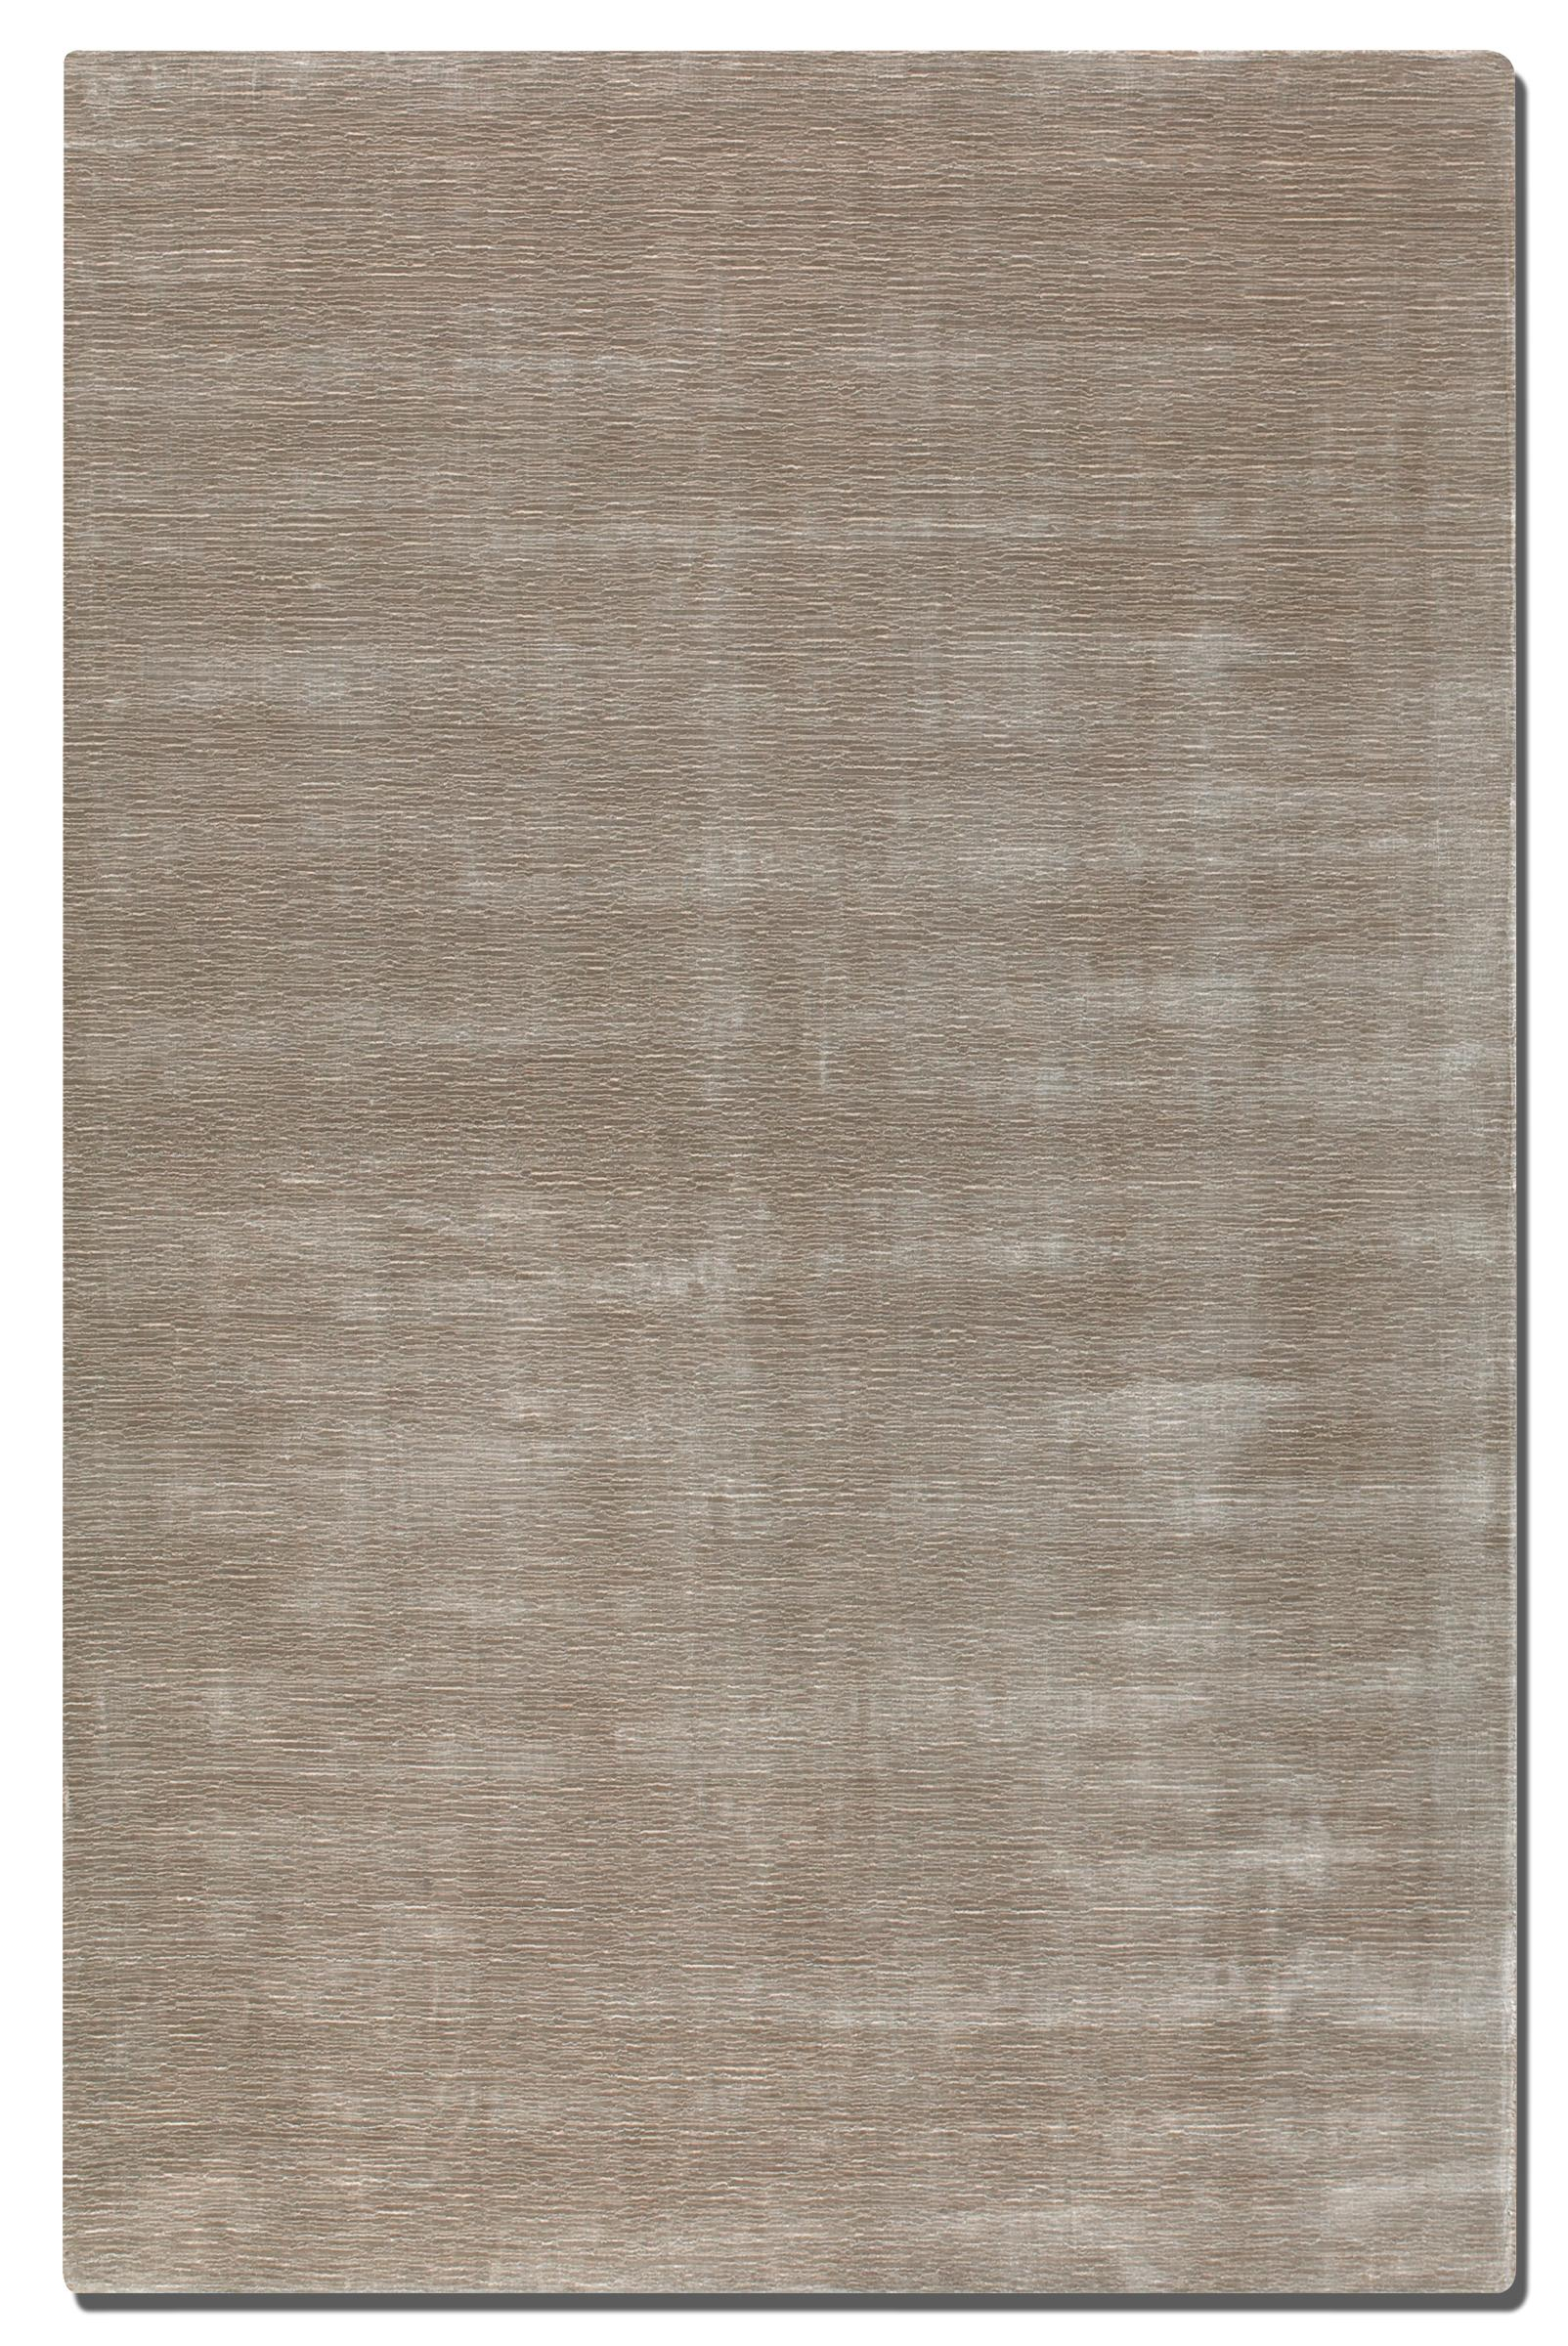 Uttermost Rugs Danube 9 X 12  - Item Number: 73018-9